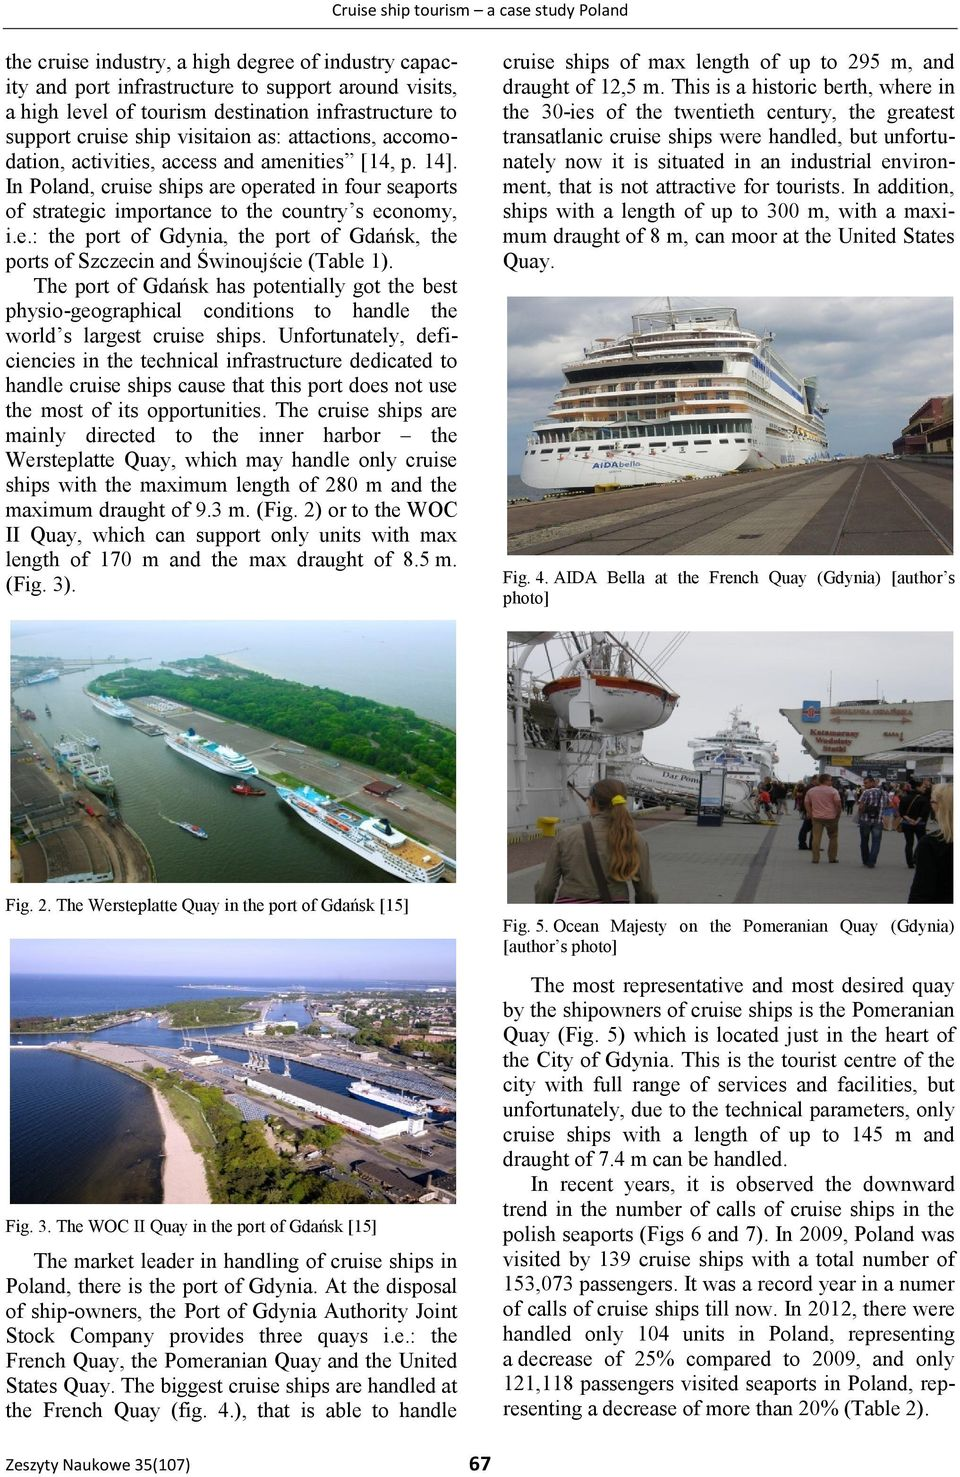 In Poland, cruise ships are operated in four seaports of strategic importance to the country s economy, i.e.: the port of Gdynia, the port of Gdańsk, the ports of Szczecin and Świnoujście (Table 1).